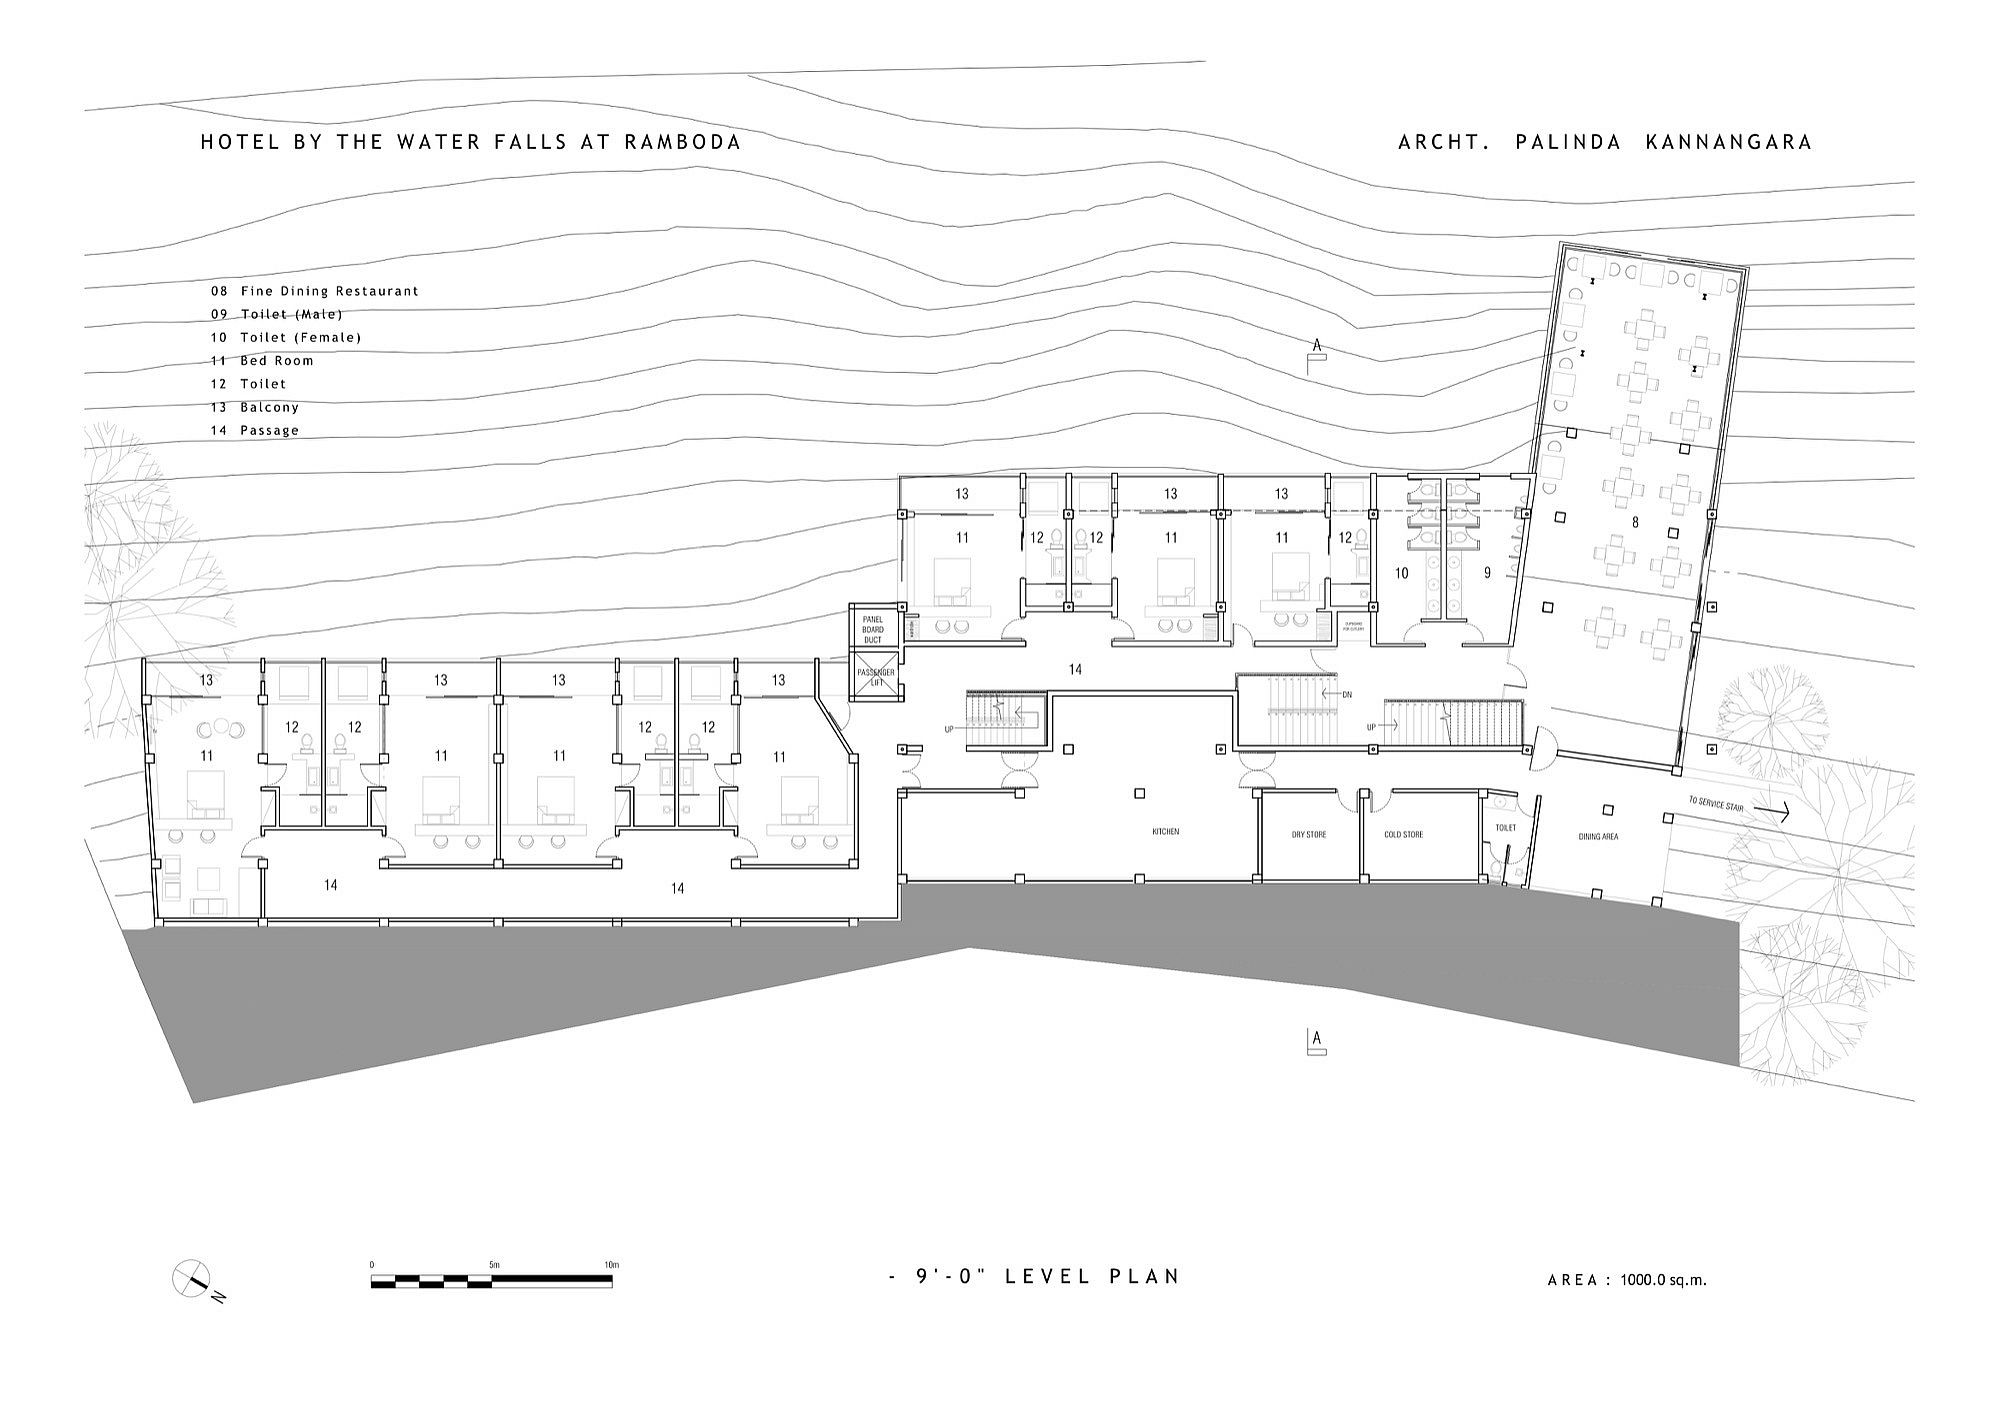 Restaurant level floor plan of Hotel by the Water Falls at Ramboda